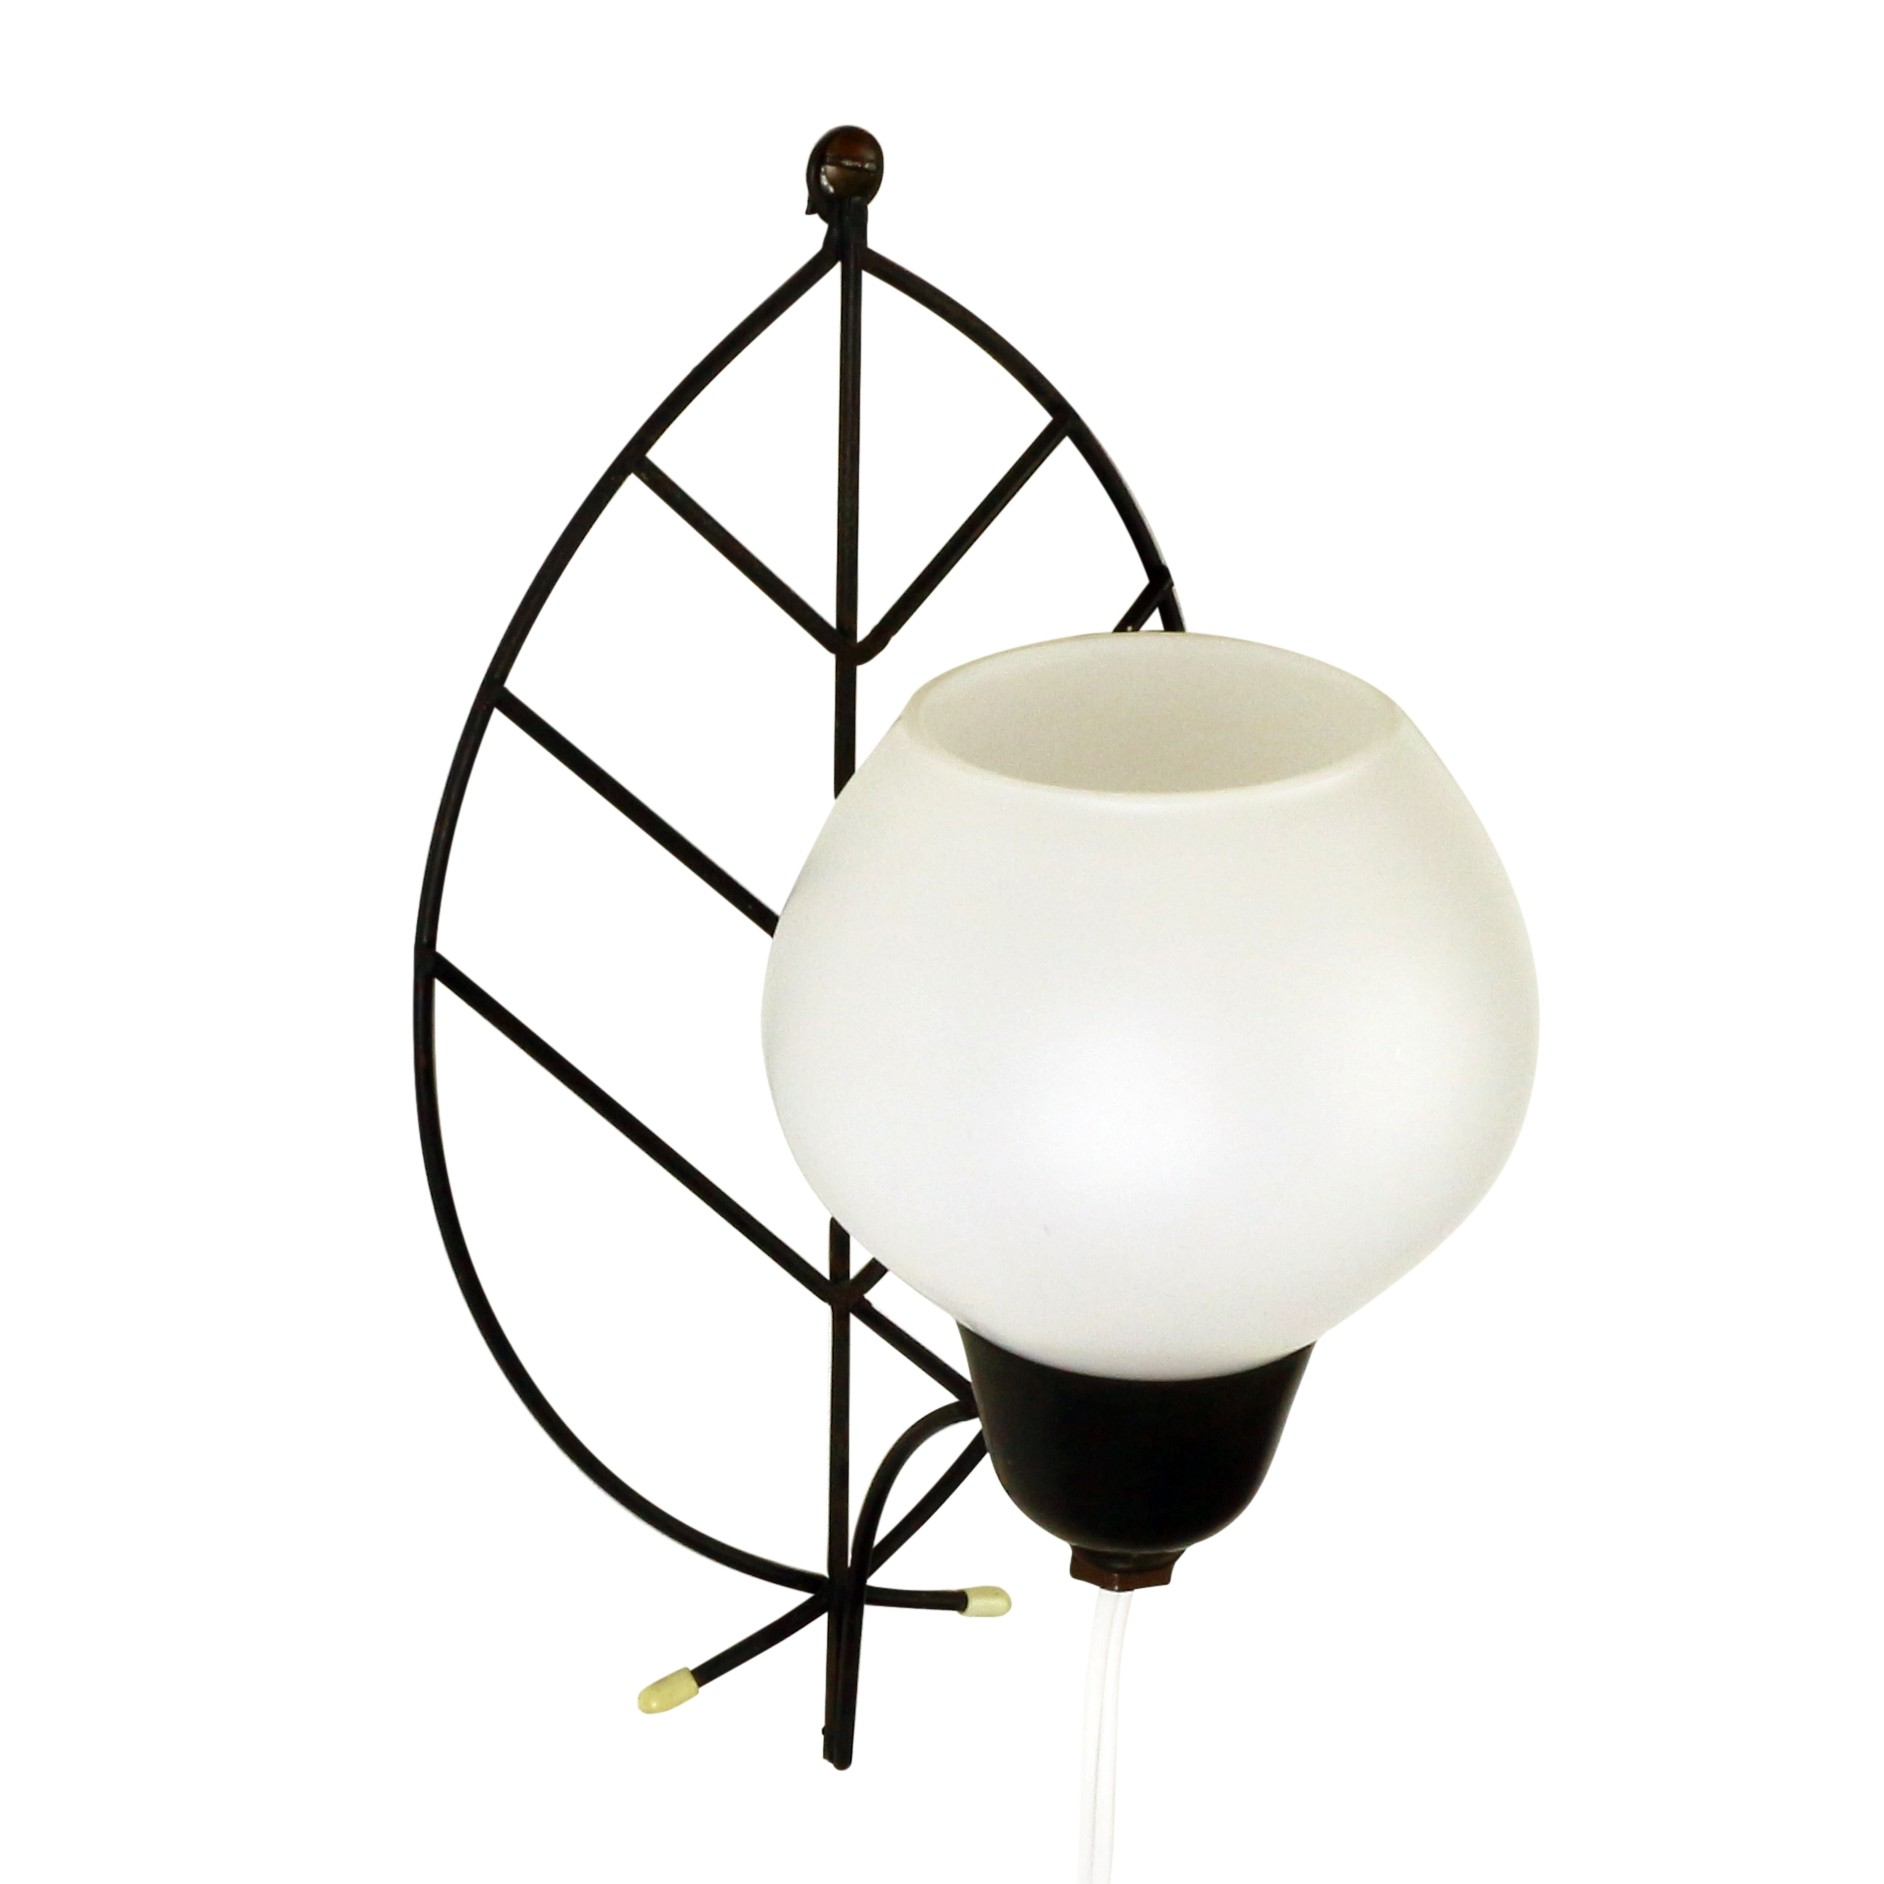 Wall lamp with leaf arm and glass bowl 1960s Design Market